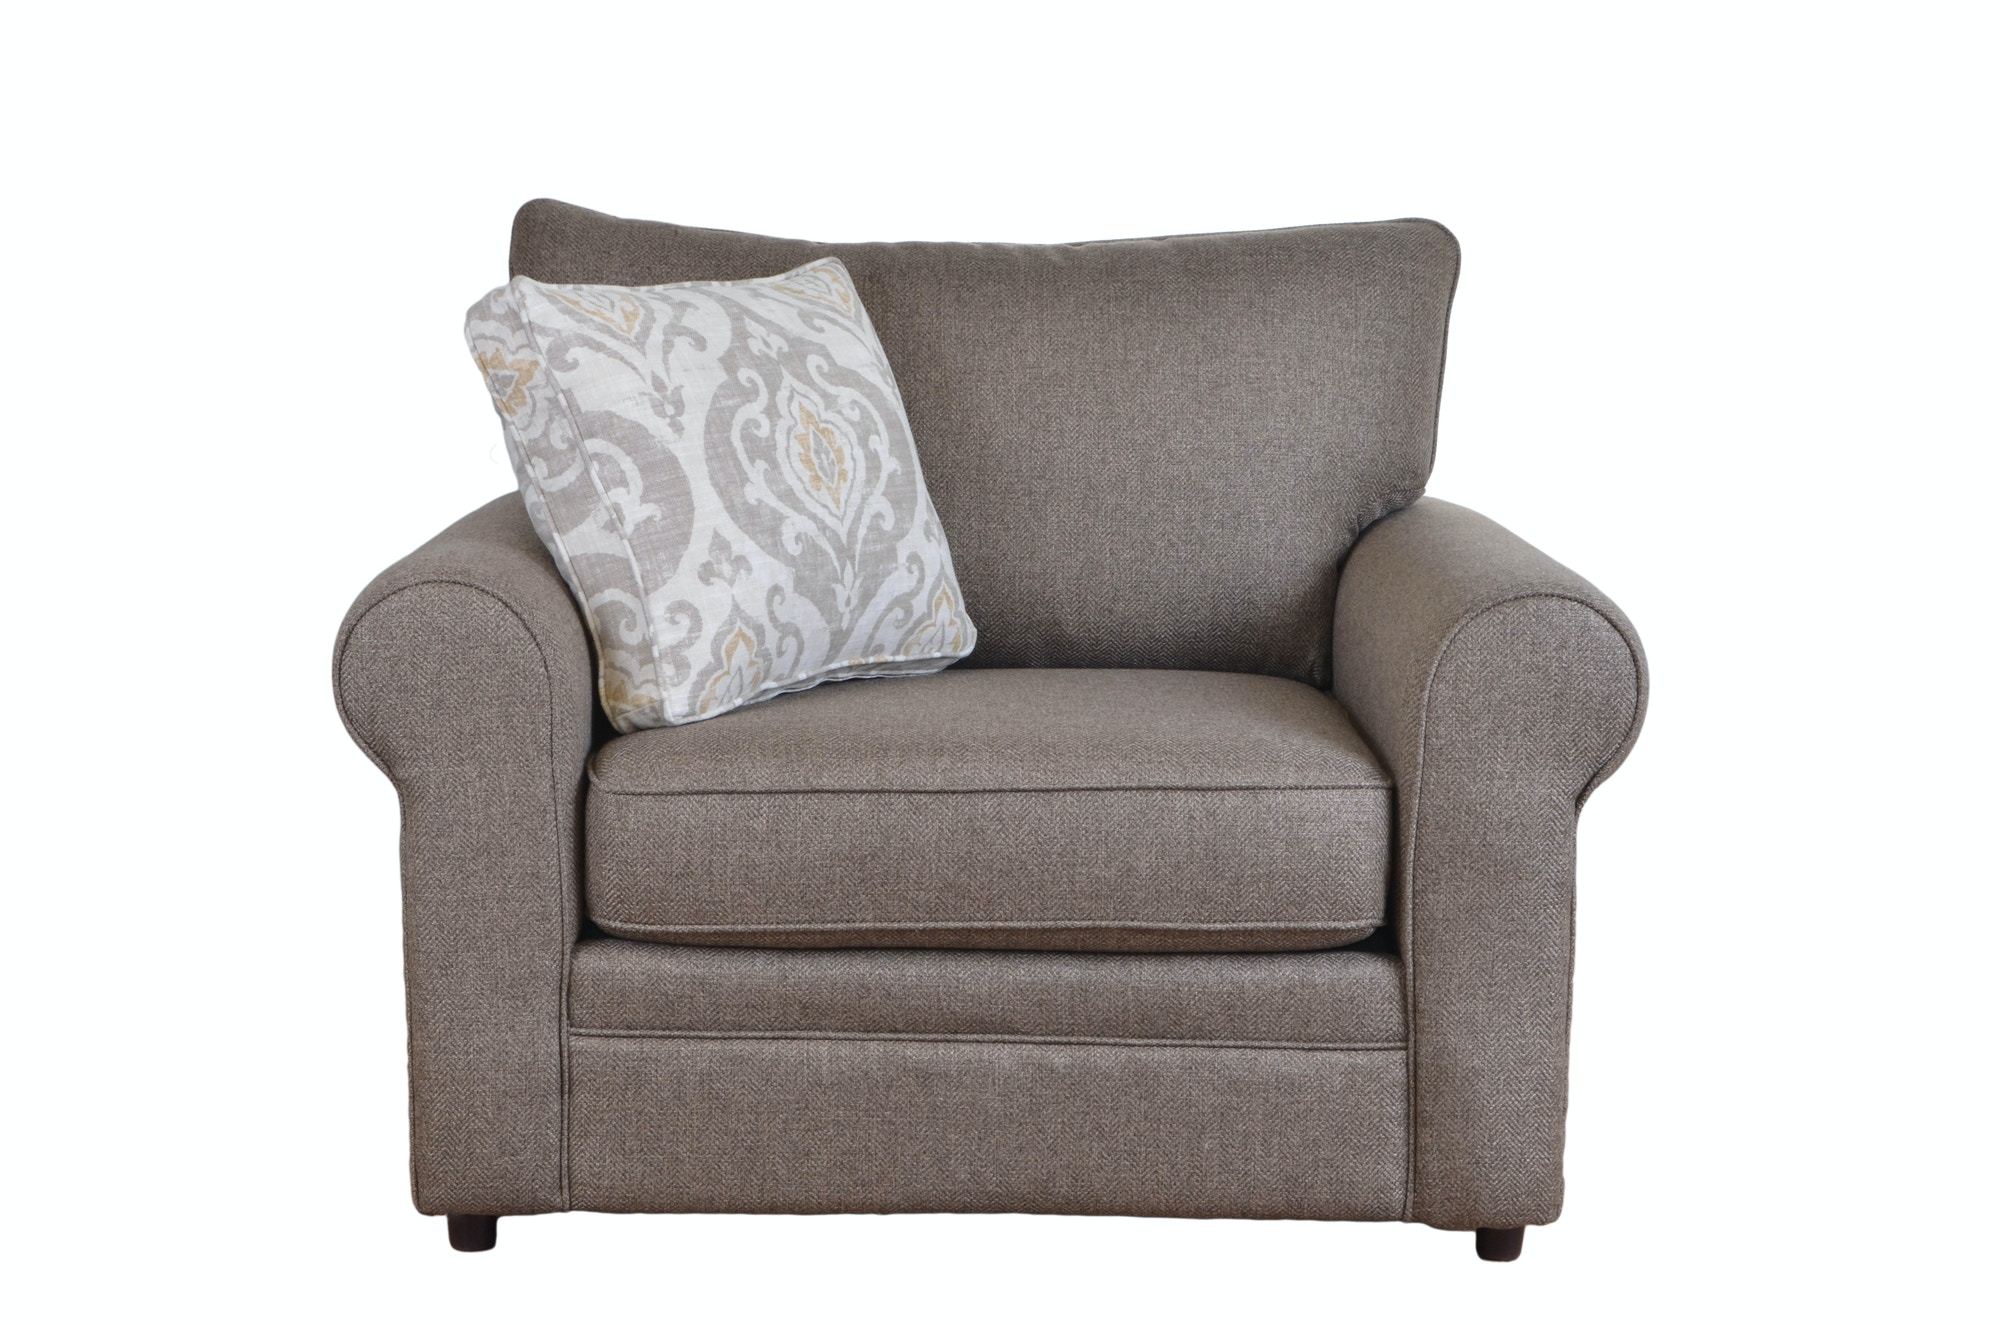 Cozy Life Living Room Chair And A Half 612770 At Talsma Furniture